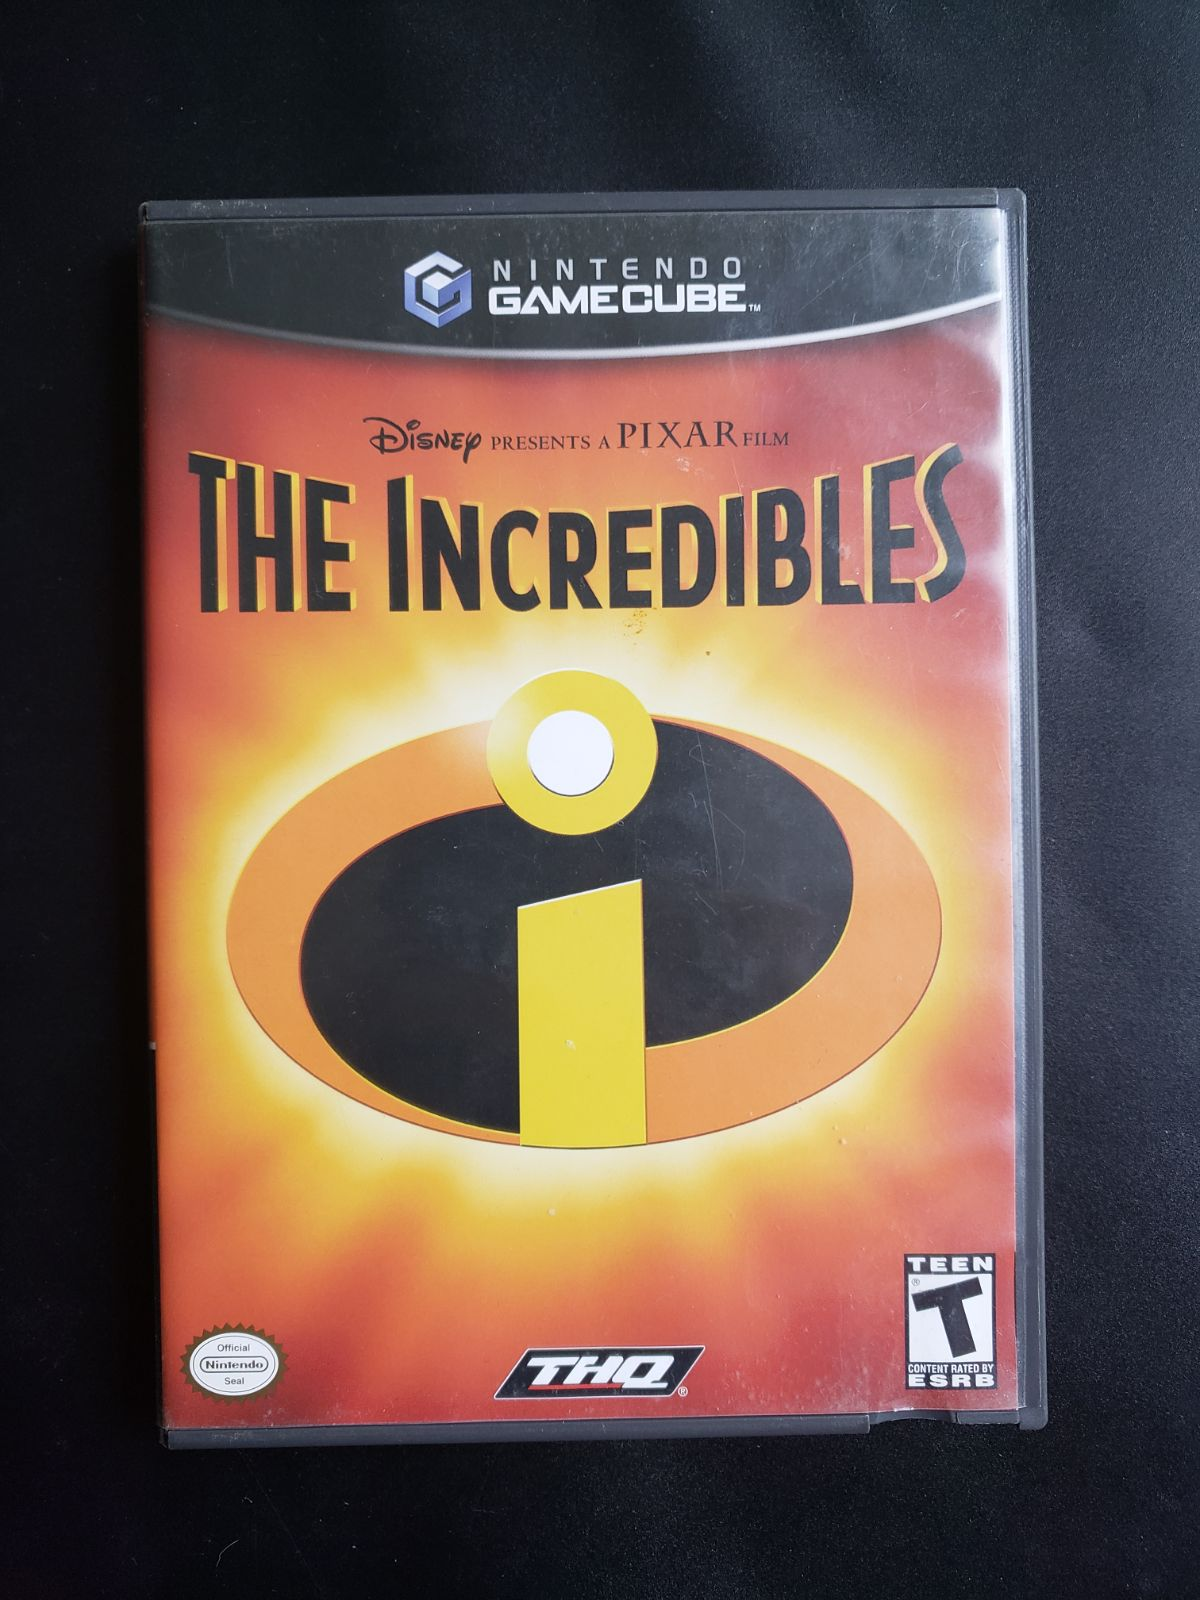 The Incredibles Gamecube game